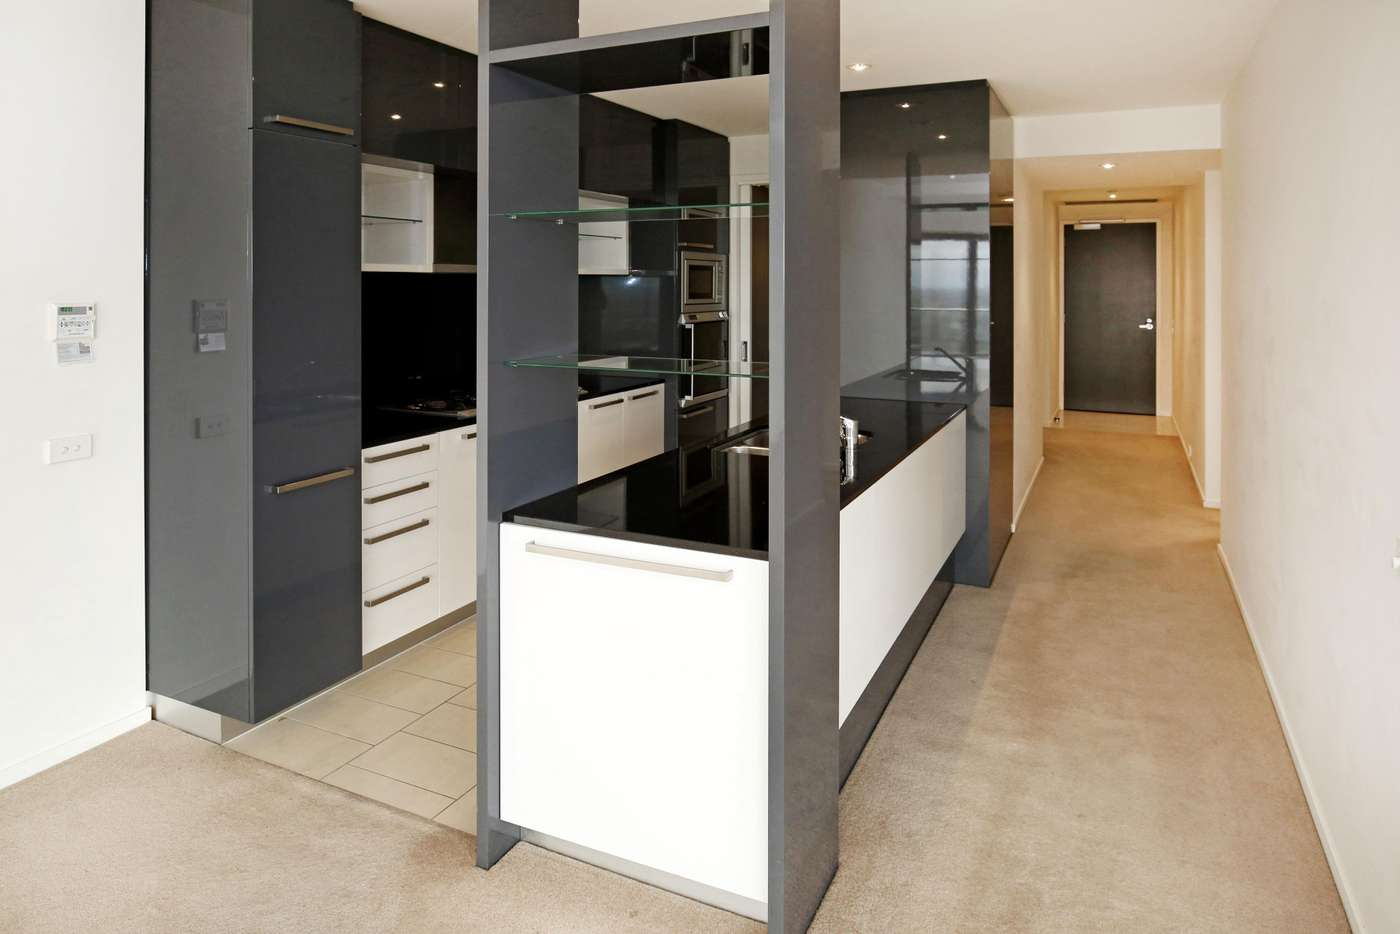 Main view of Homely apartment listing, 3702/7 Riverside Quay, Southbank VIC 3006